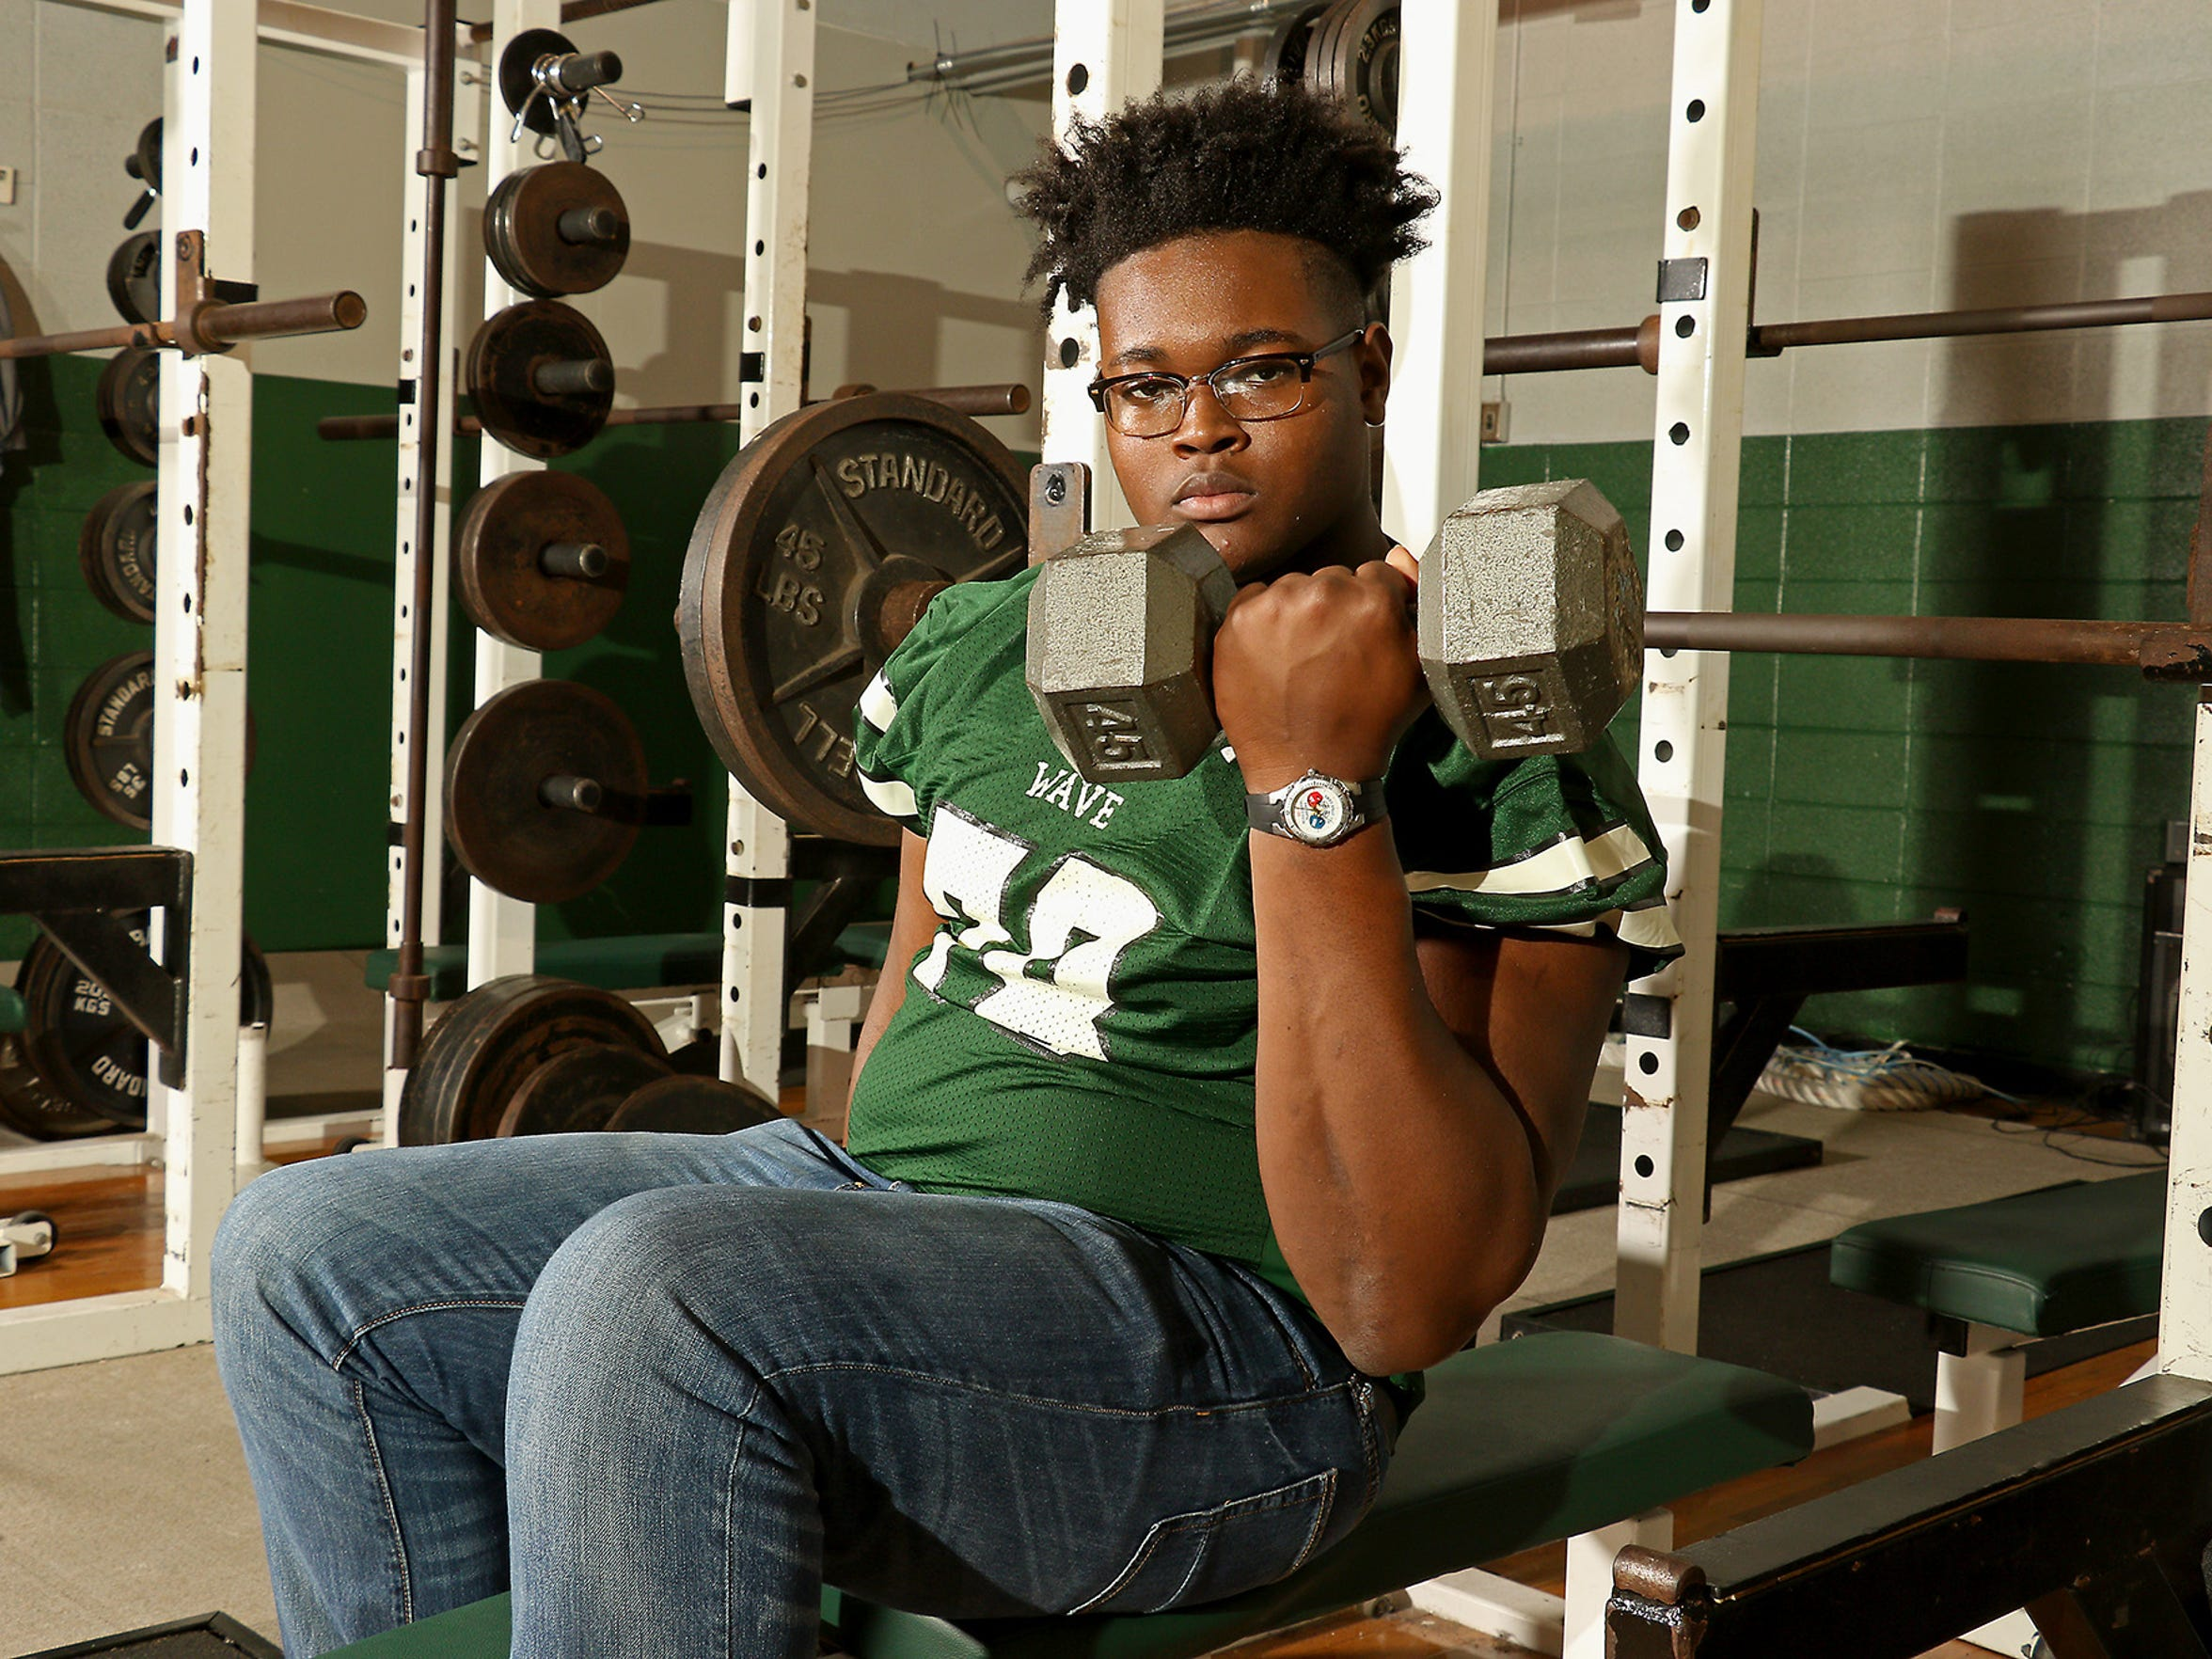 Scott Lashley boasts over 25 Division I offers and